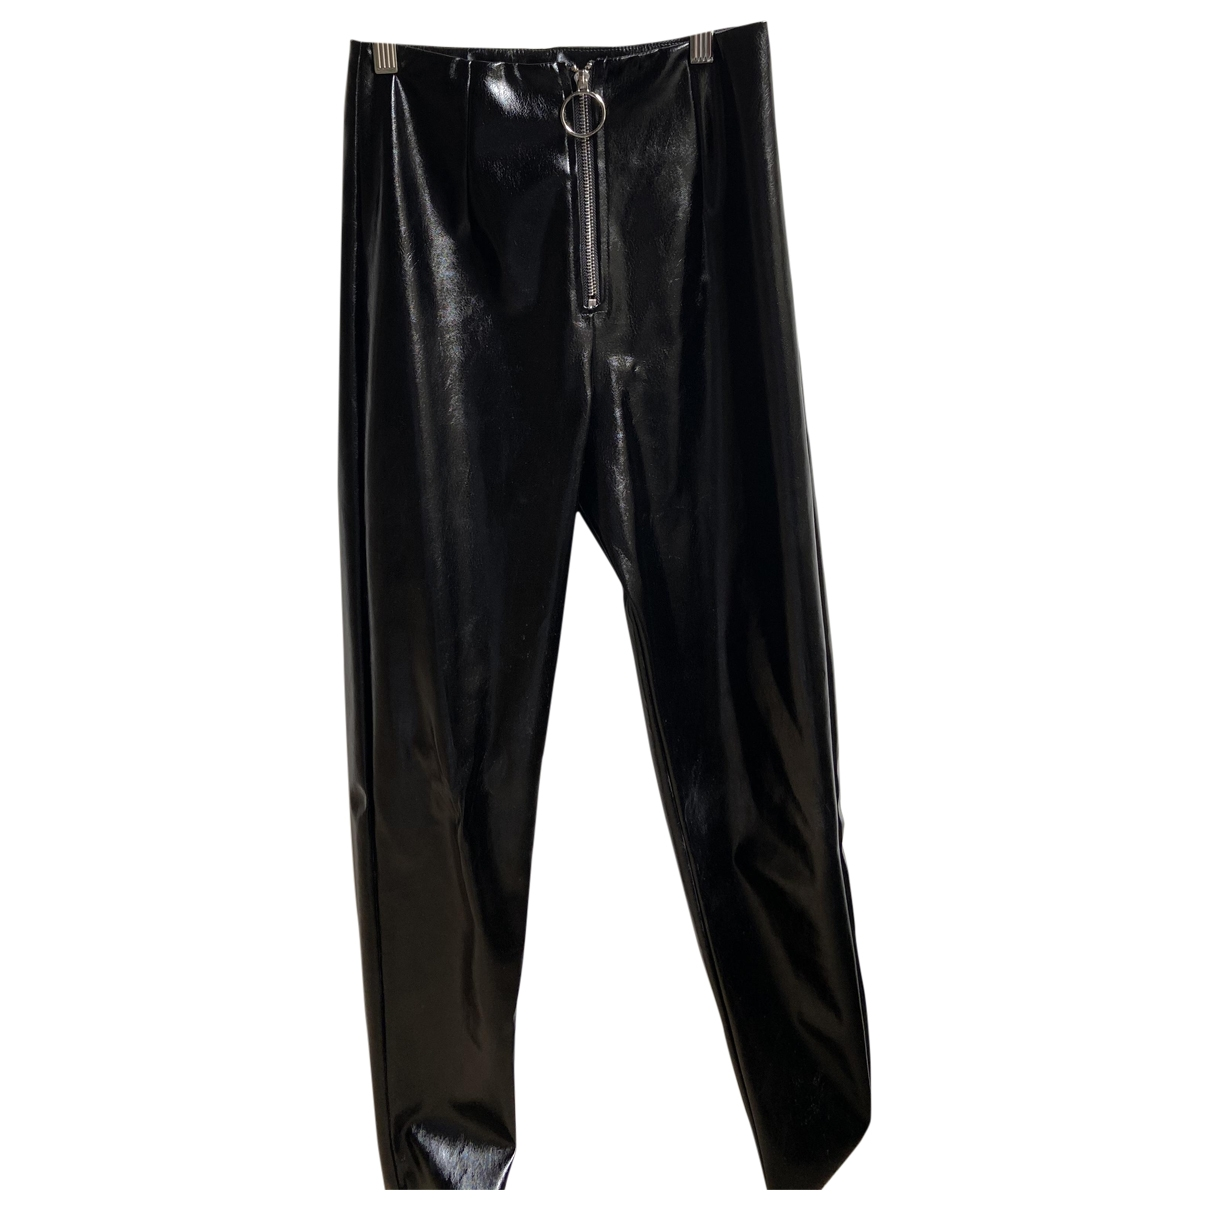 I.am.gia \N Black Trousers for Women XS International